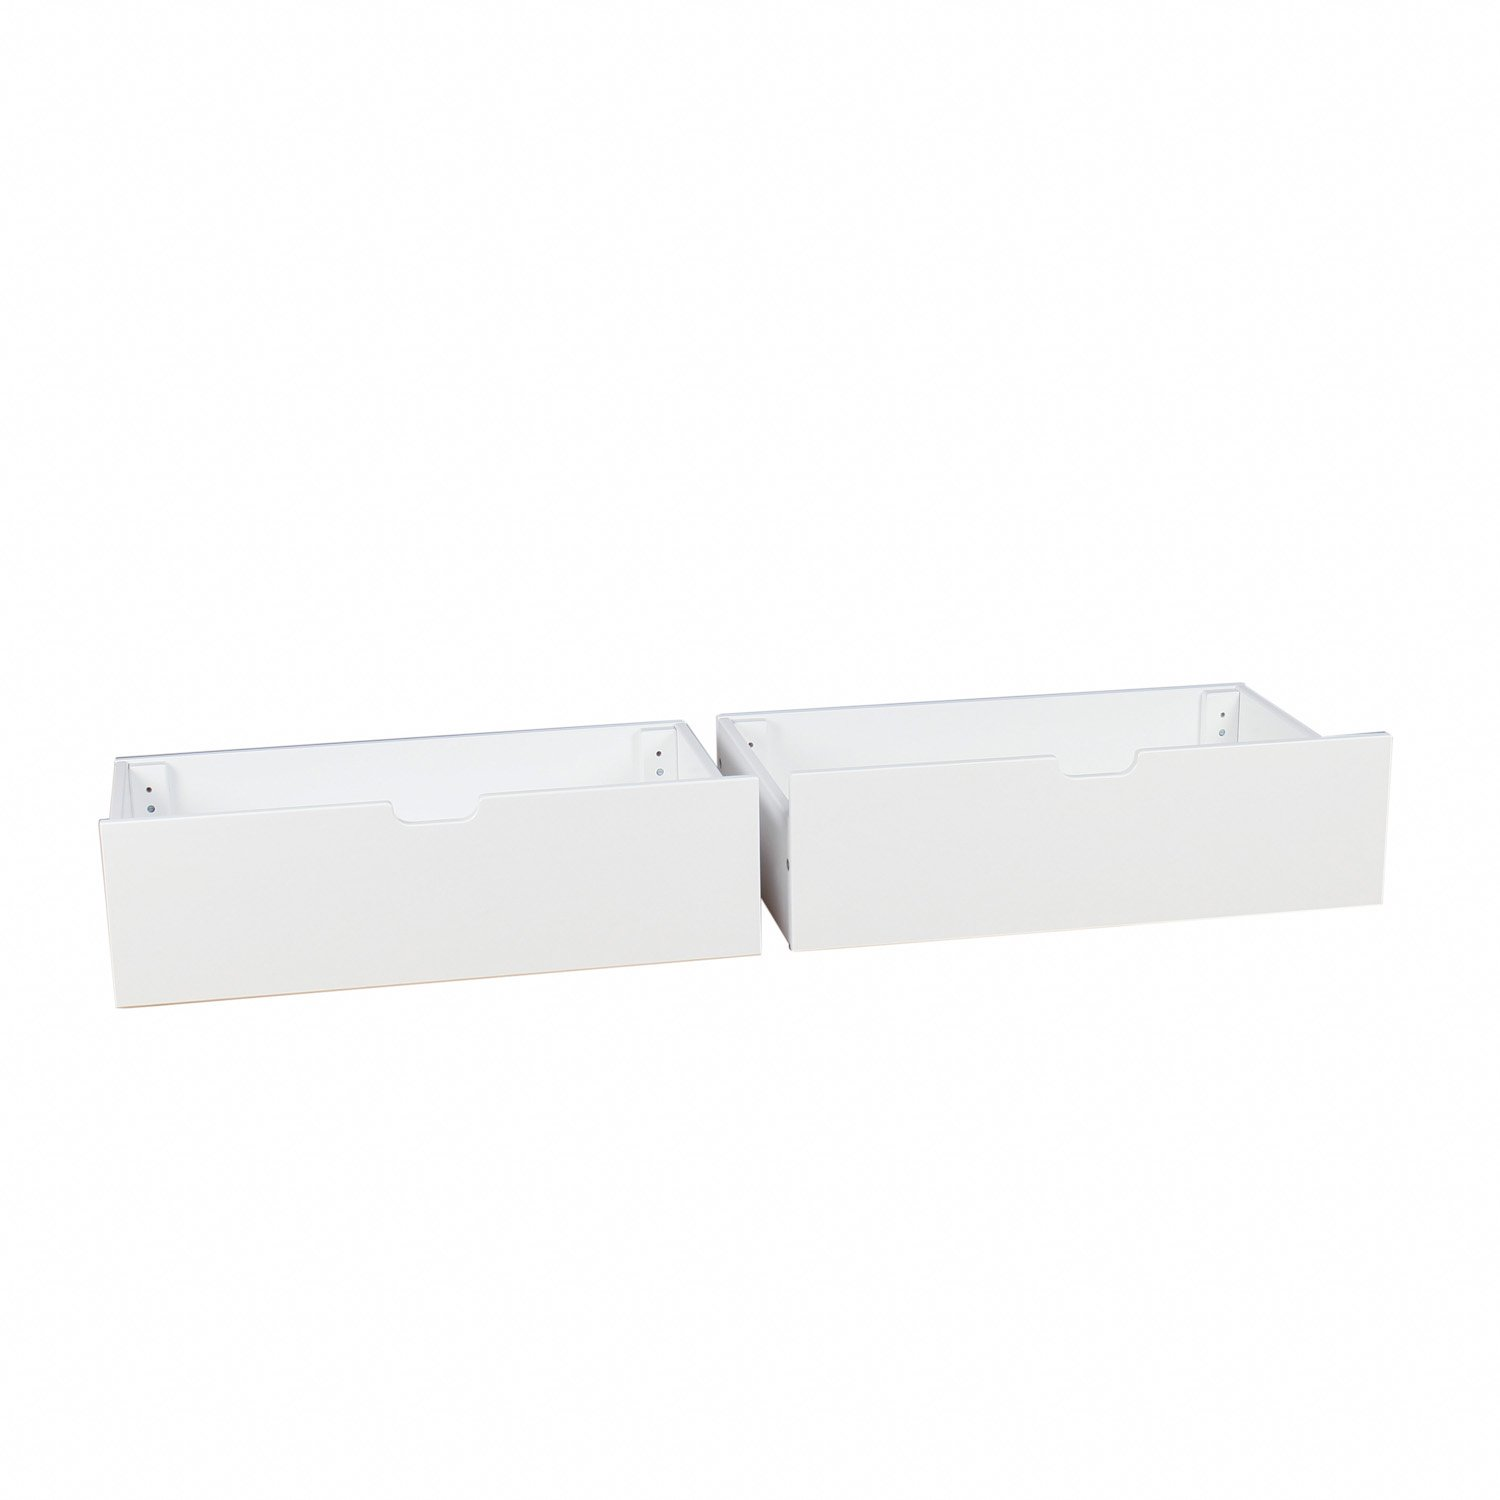 Max & Lily Solid Wood Under Bed Storage Drawers, White by Max & Lily